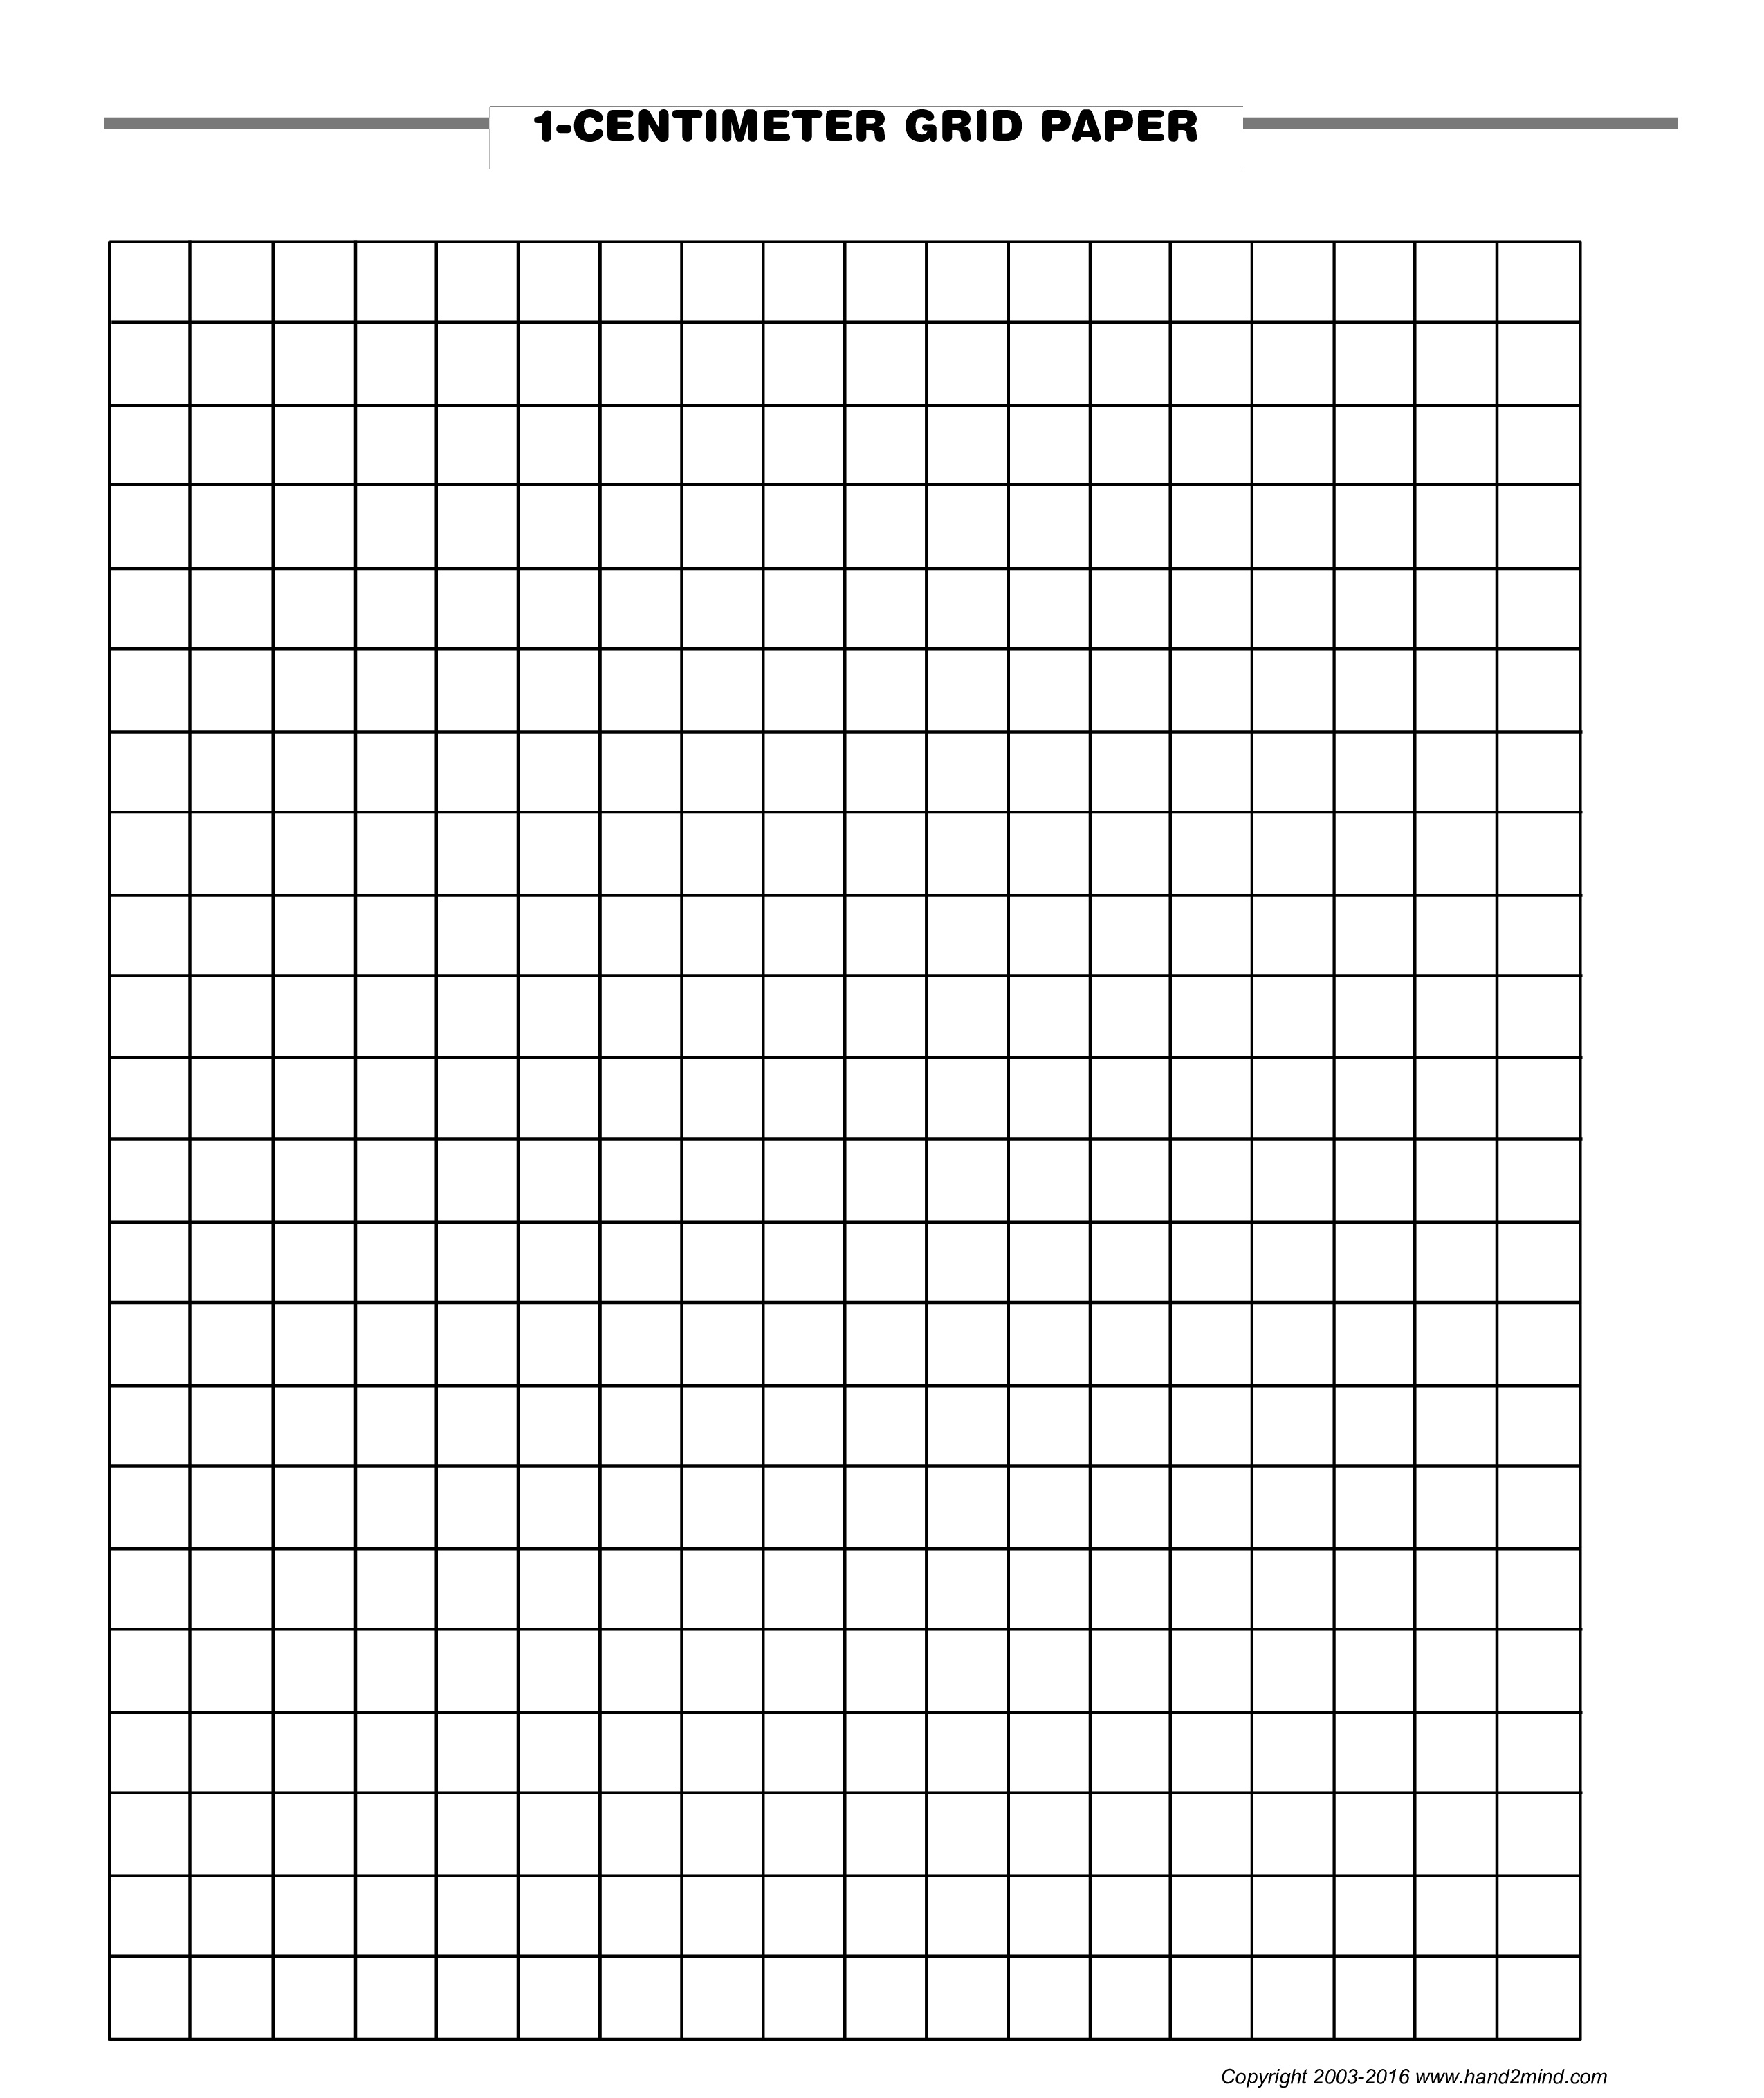 Printable Graph Paper Cm - Demir.iso-Consulting.co - Free Printable Grid Paper